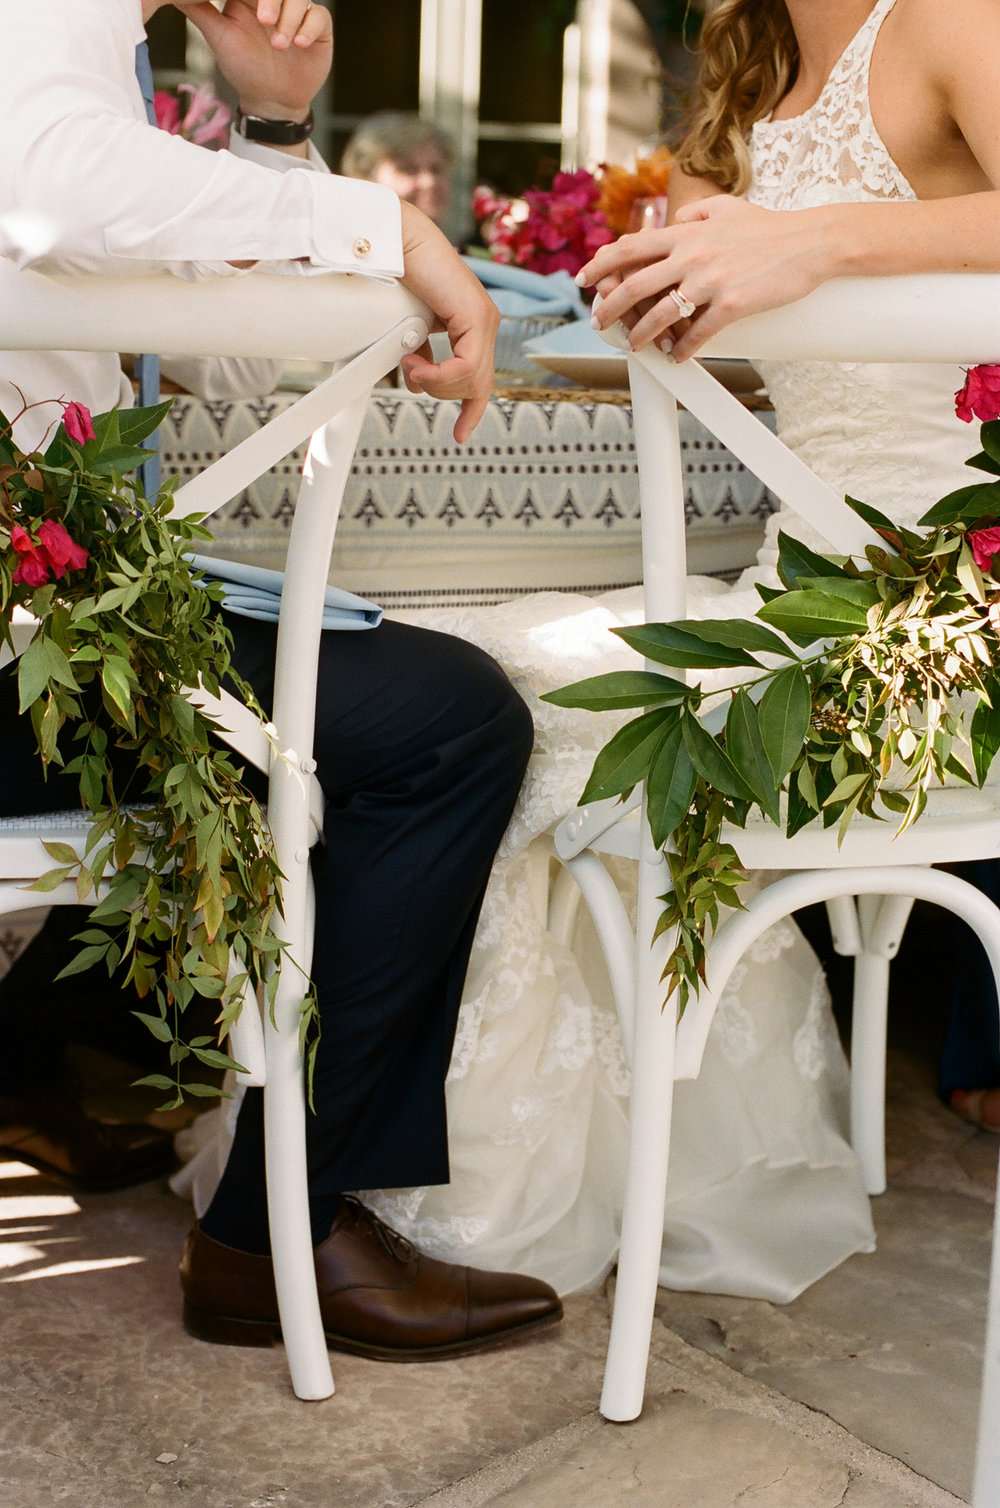 38-bride-groom-white-chair.jpg